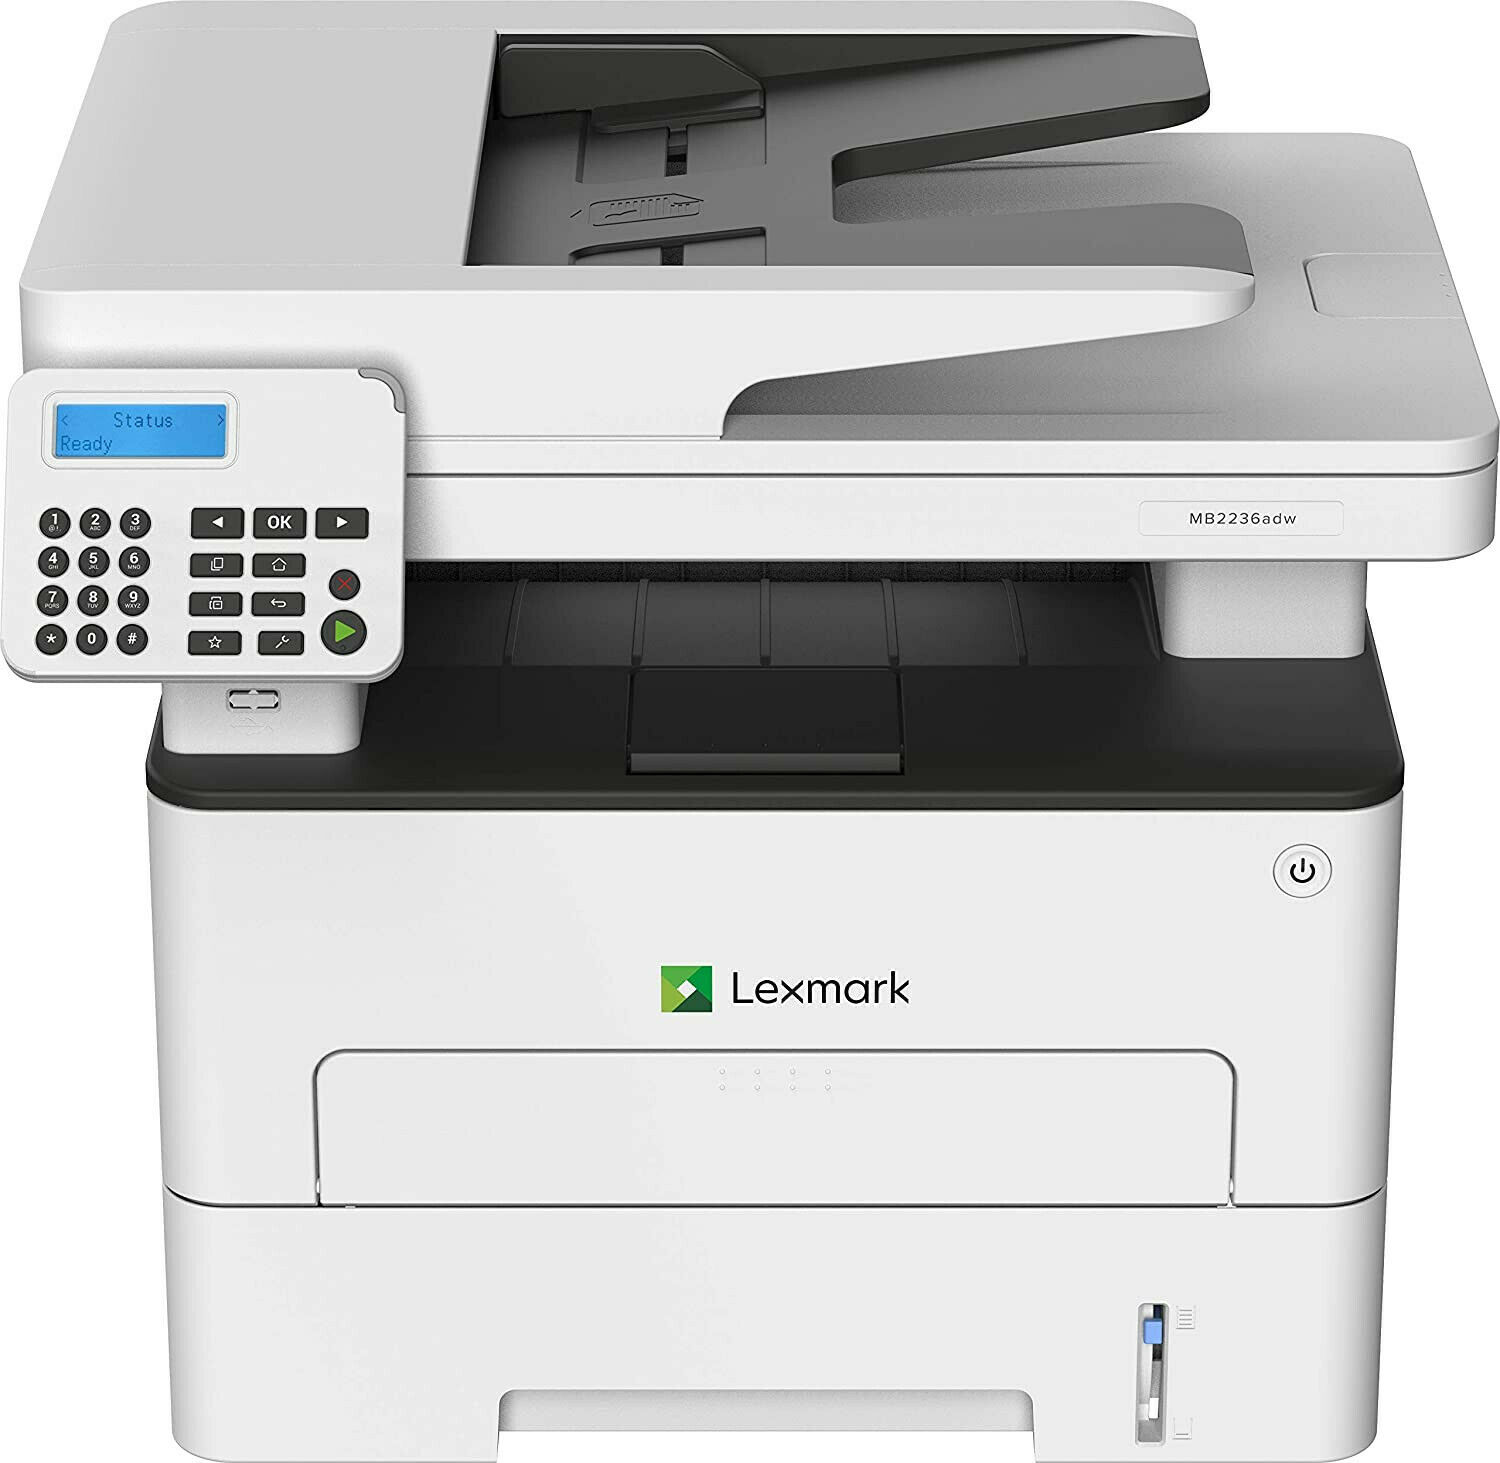 Lexmark MB2236adw Wireless Laser All-In-One Printer, copy, f